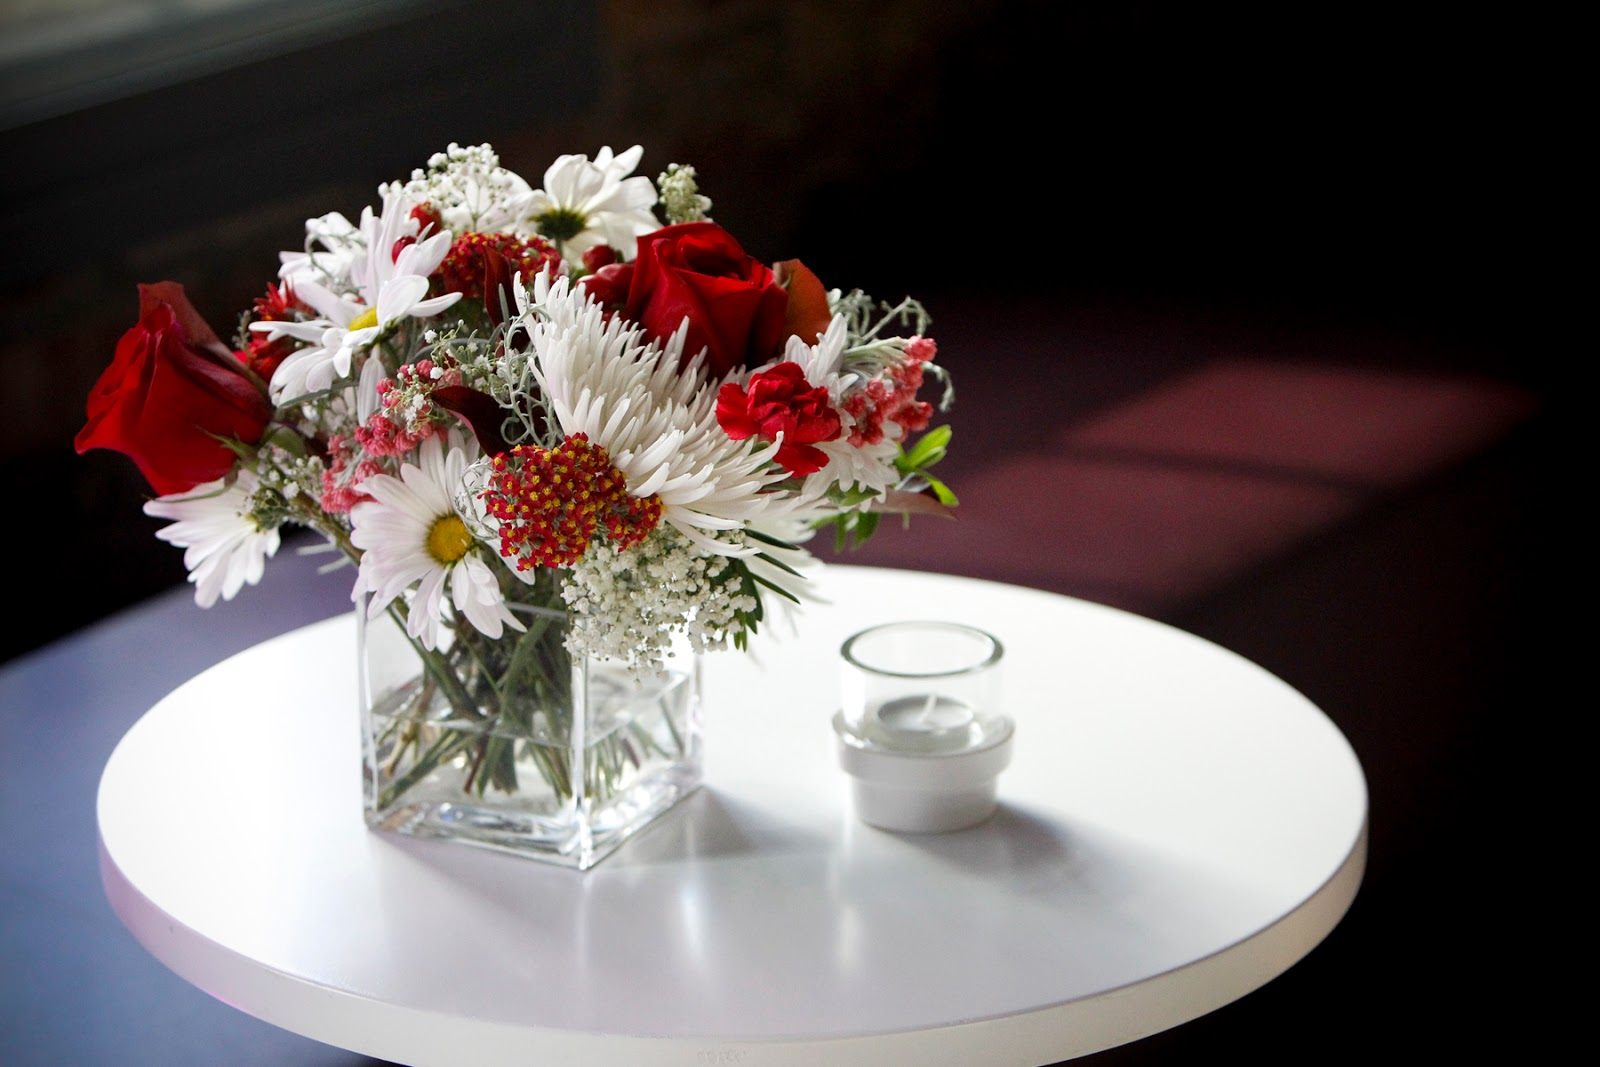 Bloomex provides flowers for epilepsy toronto vip event bloomex was delighted to be asked to provide all the flowers for recent vip event in toronto epilepsy toronto hosted an exclusive vip evening in downtown izmirmasajfo